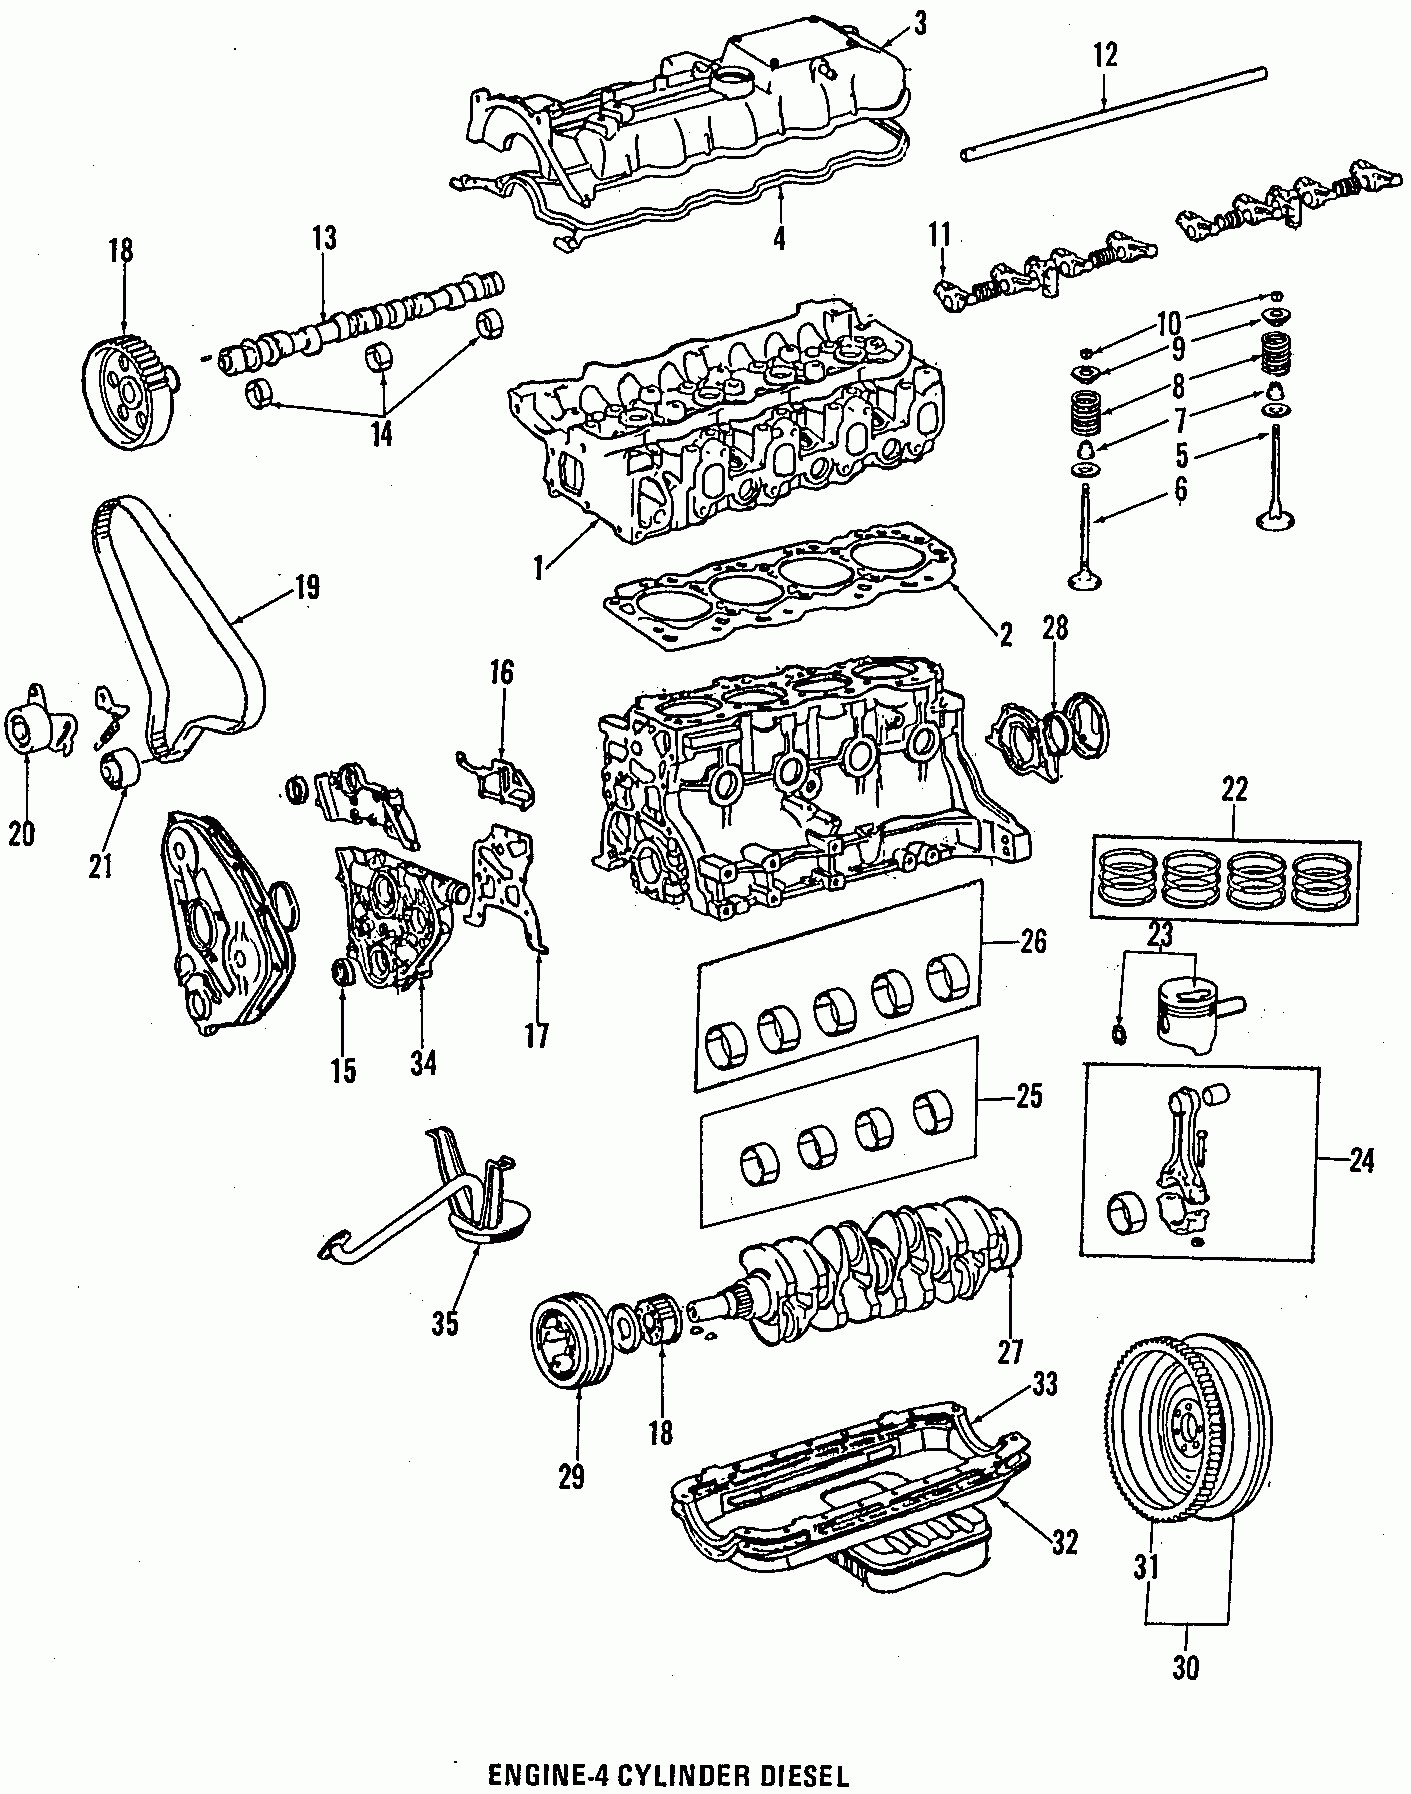 2007 Toyota Tundra Parts Diagram My Wiring Diagram